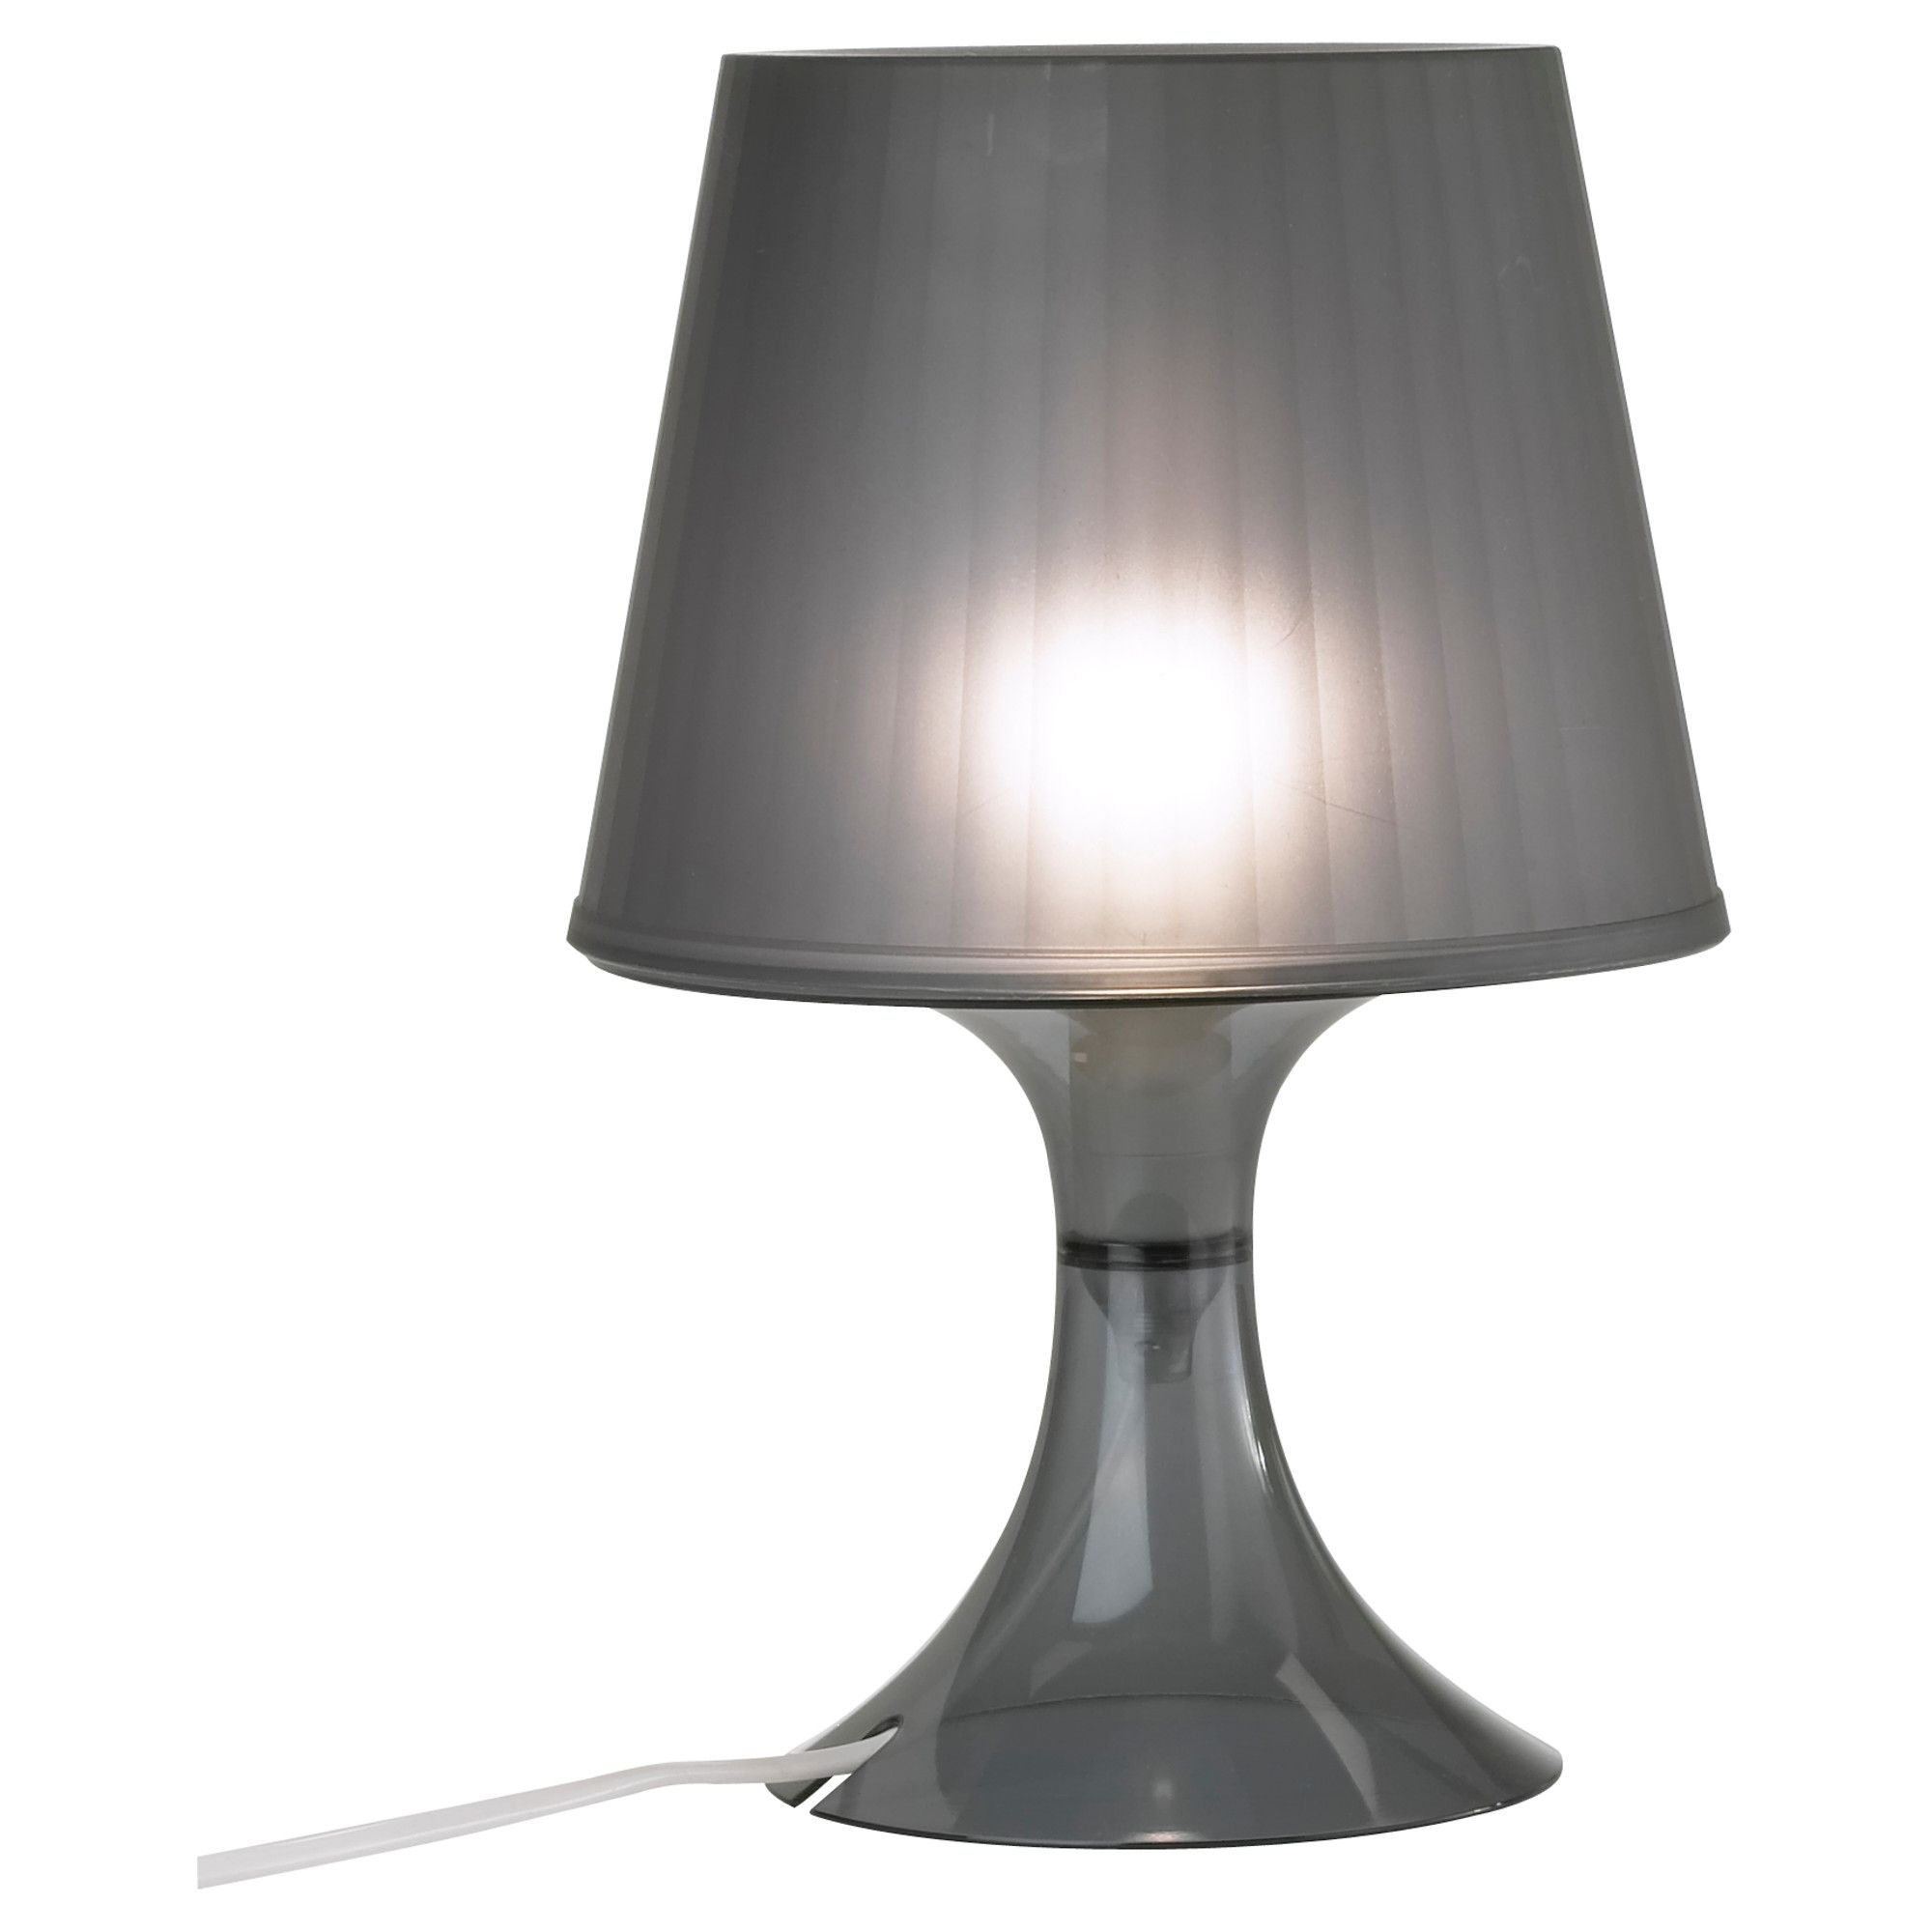 Lampan Table Lamp – Black – Ikea A Lamp Similar To Jenna's, Sitting Regarding Famous Living Room Table Lamps At Ikea (View 6 of 15)